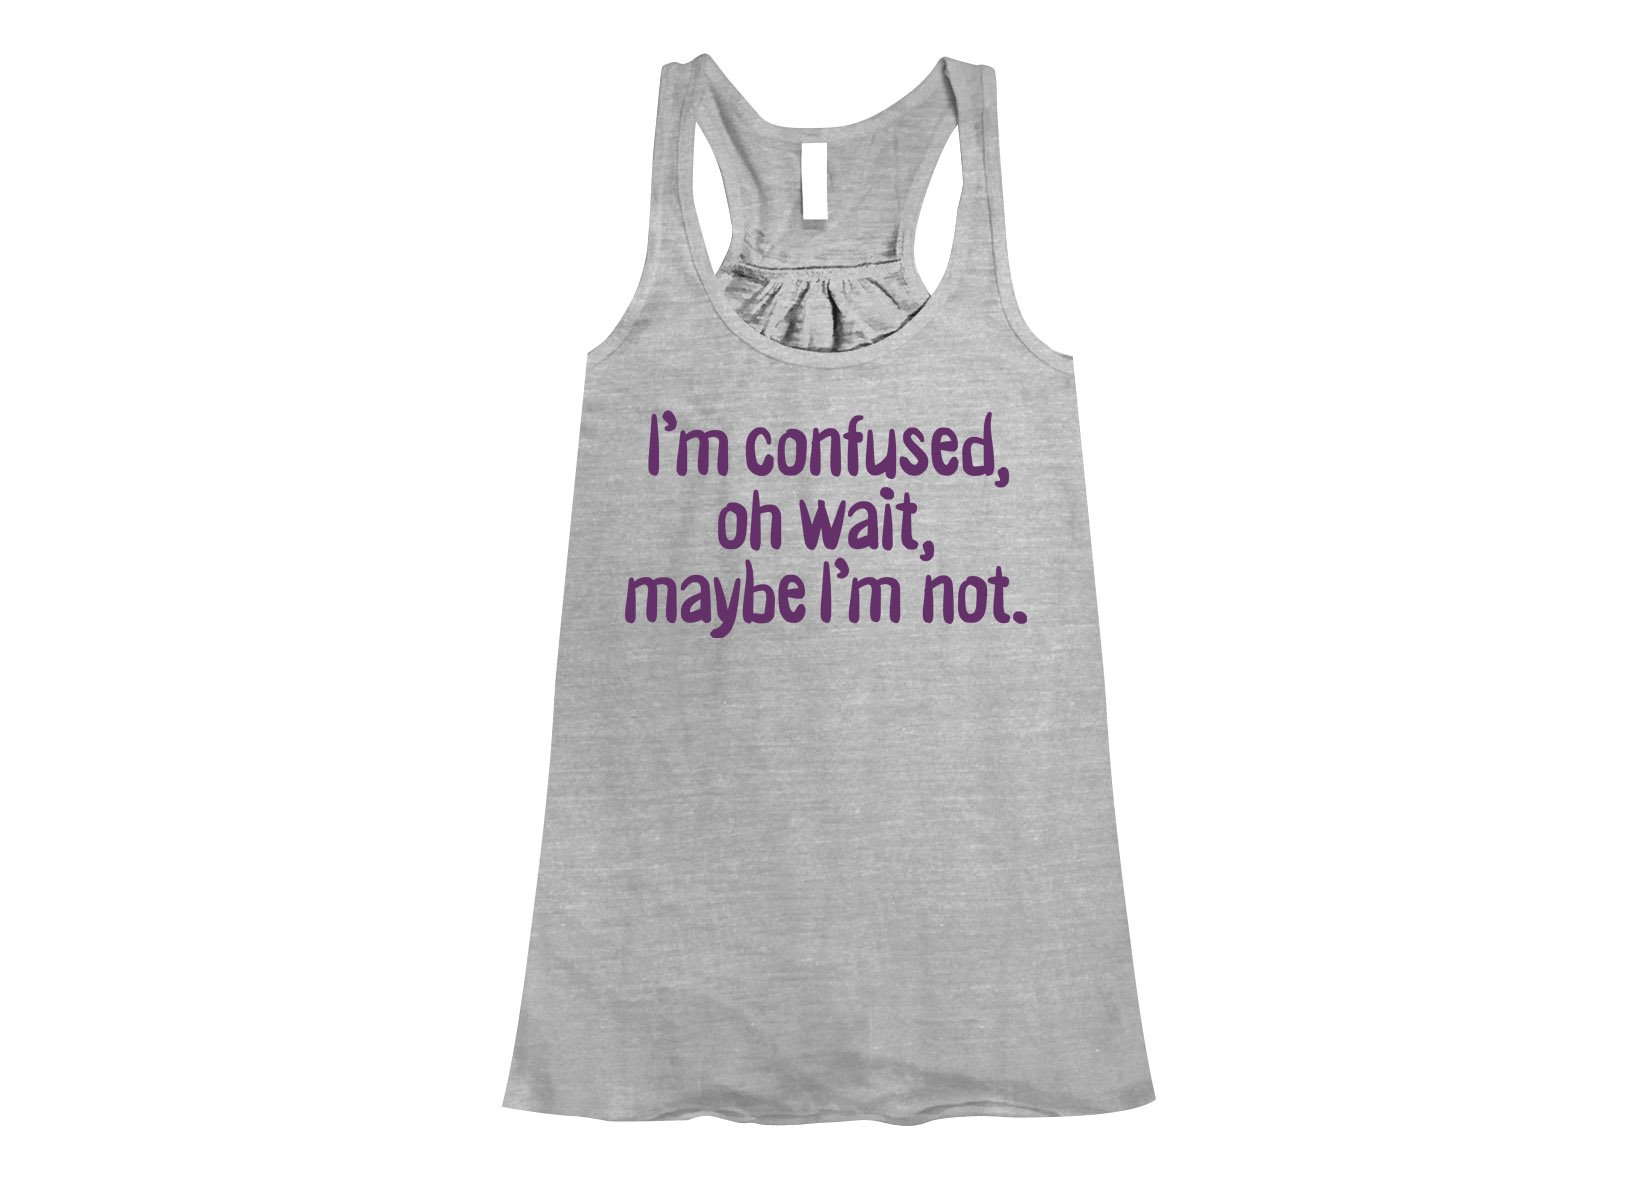 I'm Confused, Oh Wait on Womens Tanks T-Shirt